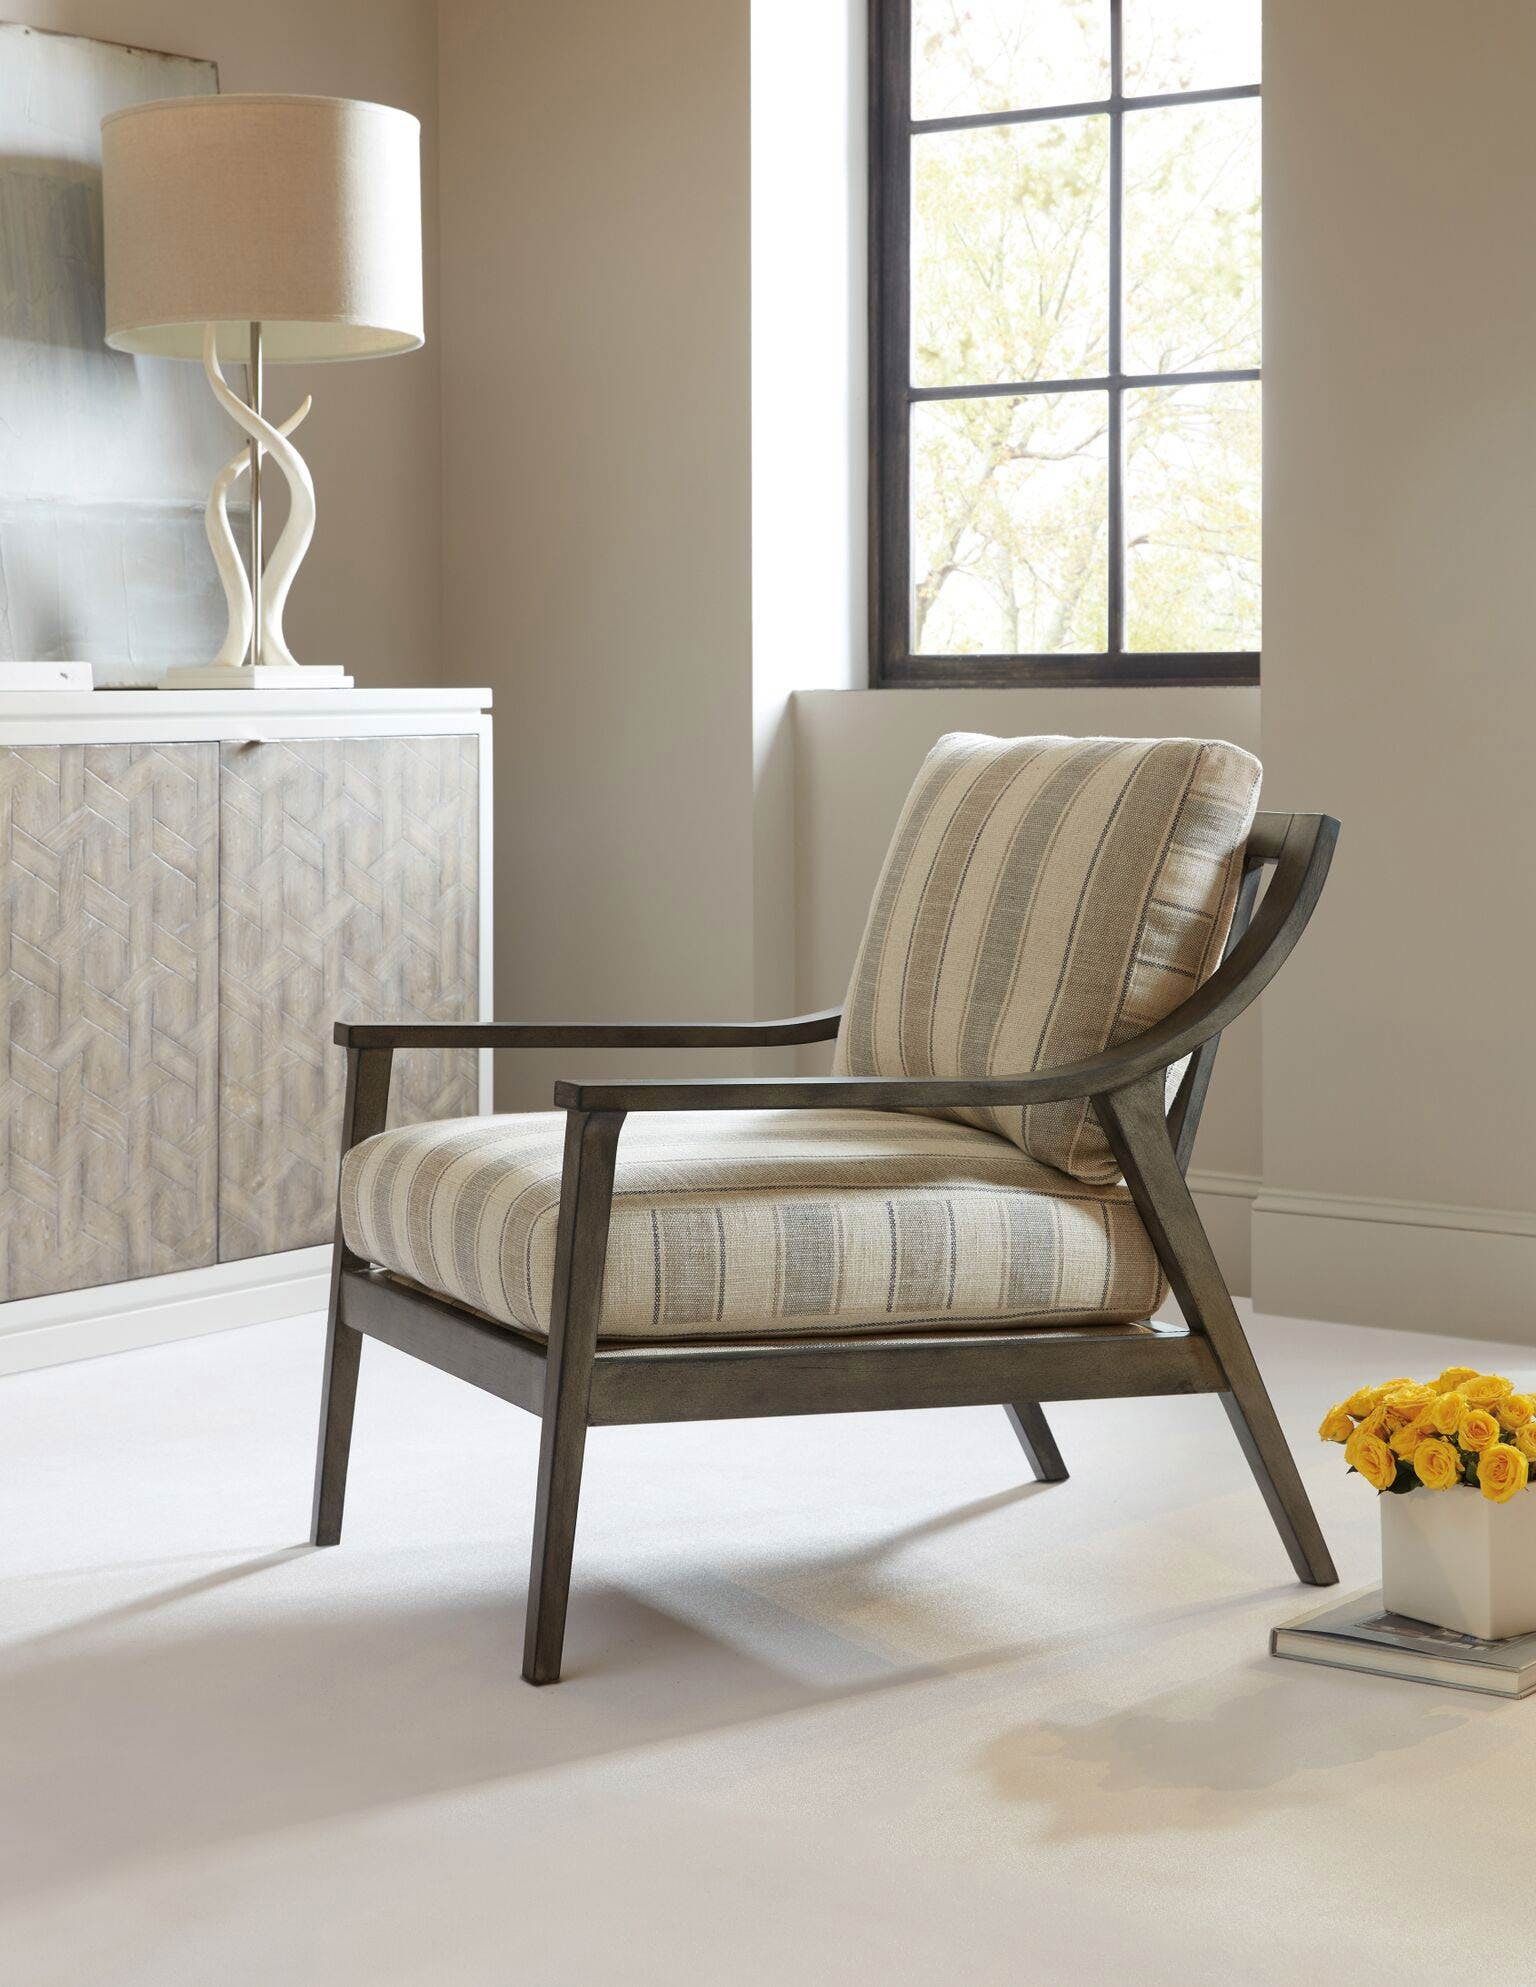 Beautiful Chairs Updated Classics Trendy Transitional Home Furnishings